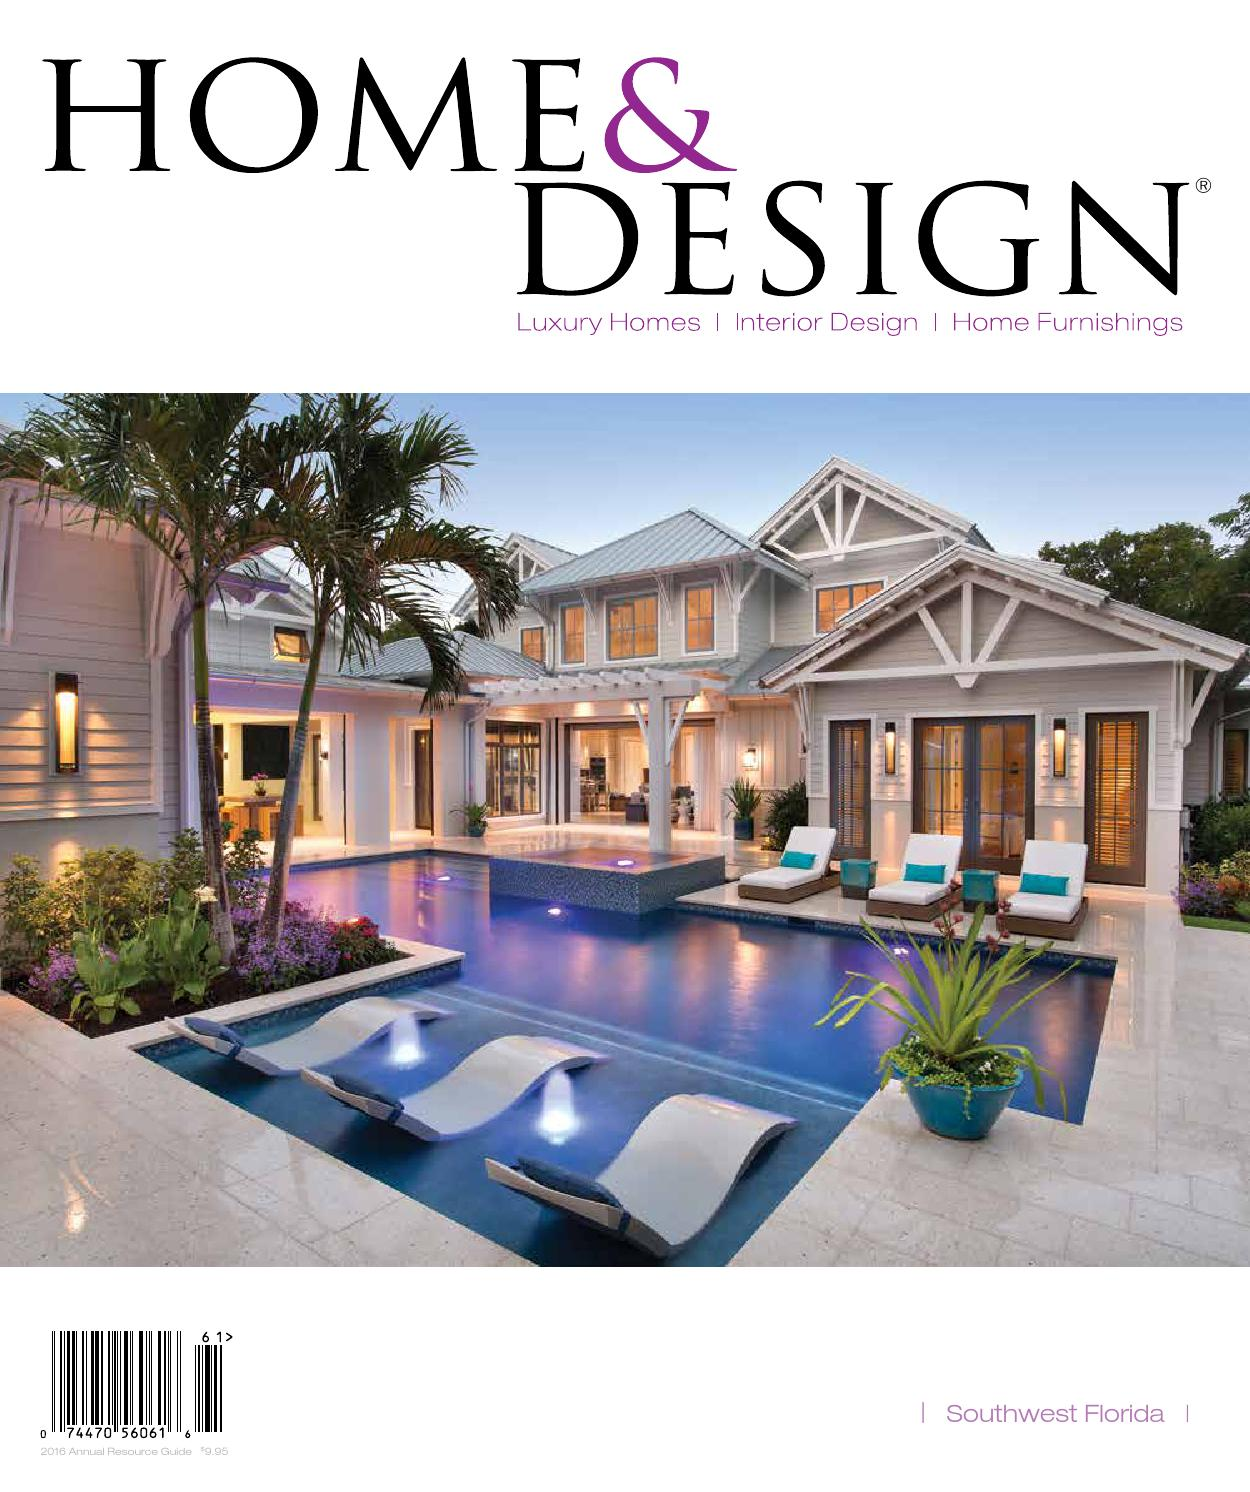 Home Design Magazine Annual Resource Guide 2016